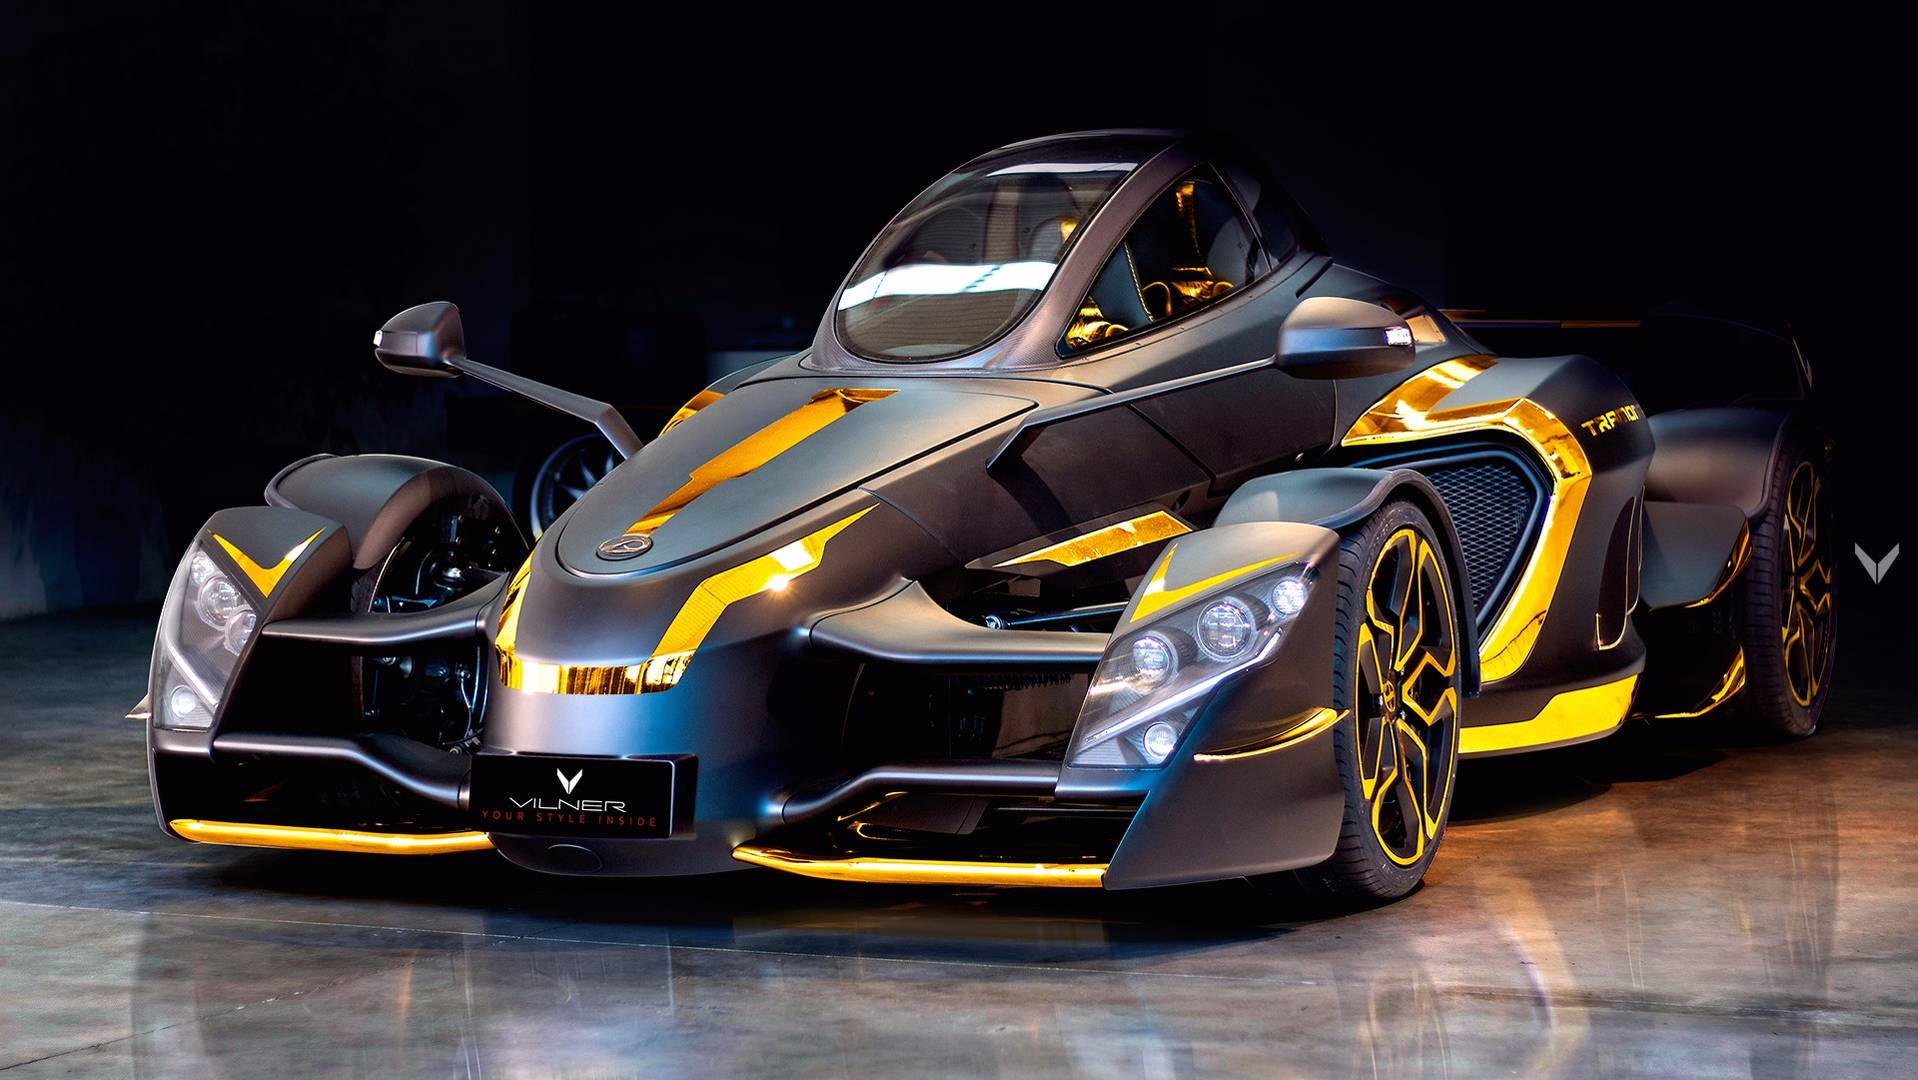 888 Hp Tramontana Sports Car Goes Gold Thanks To Vilner